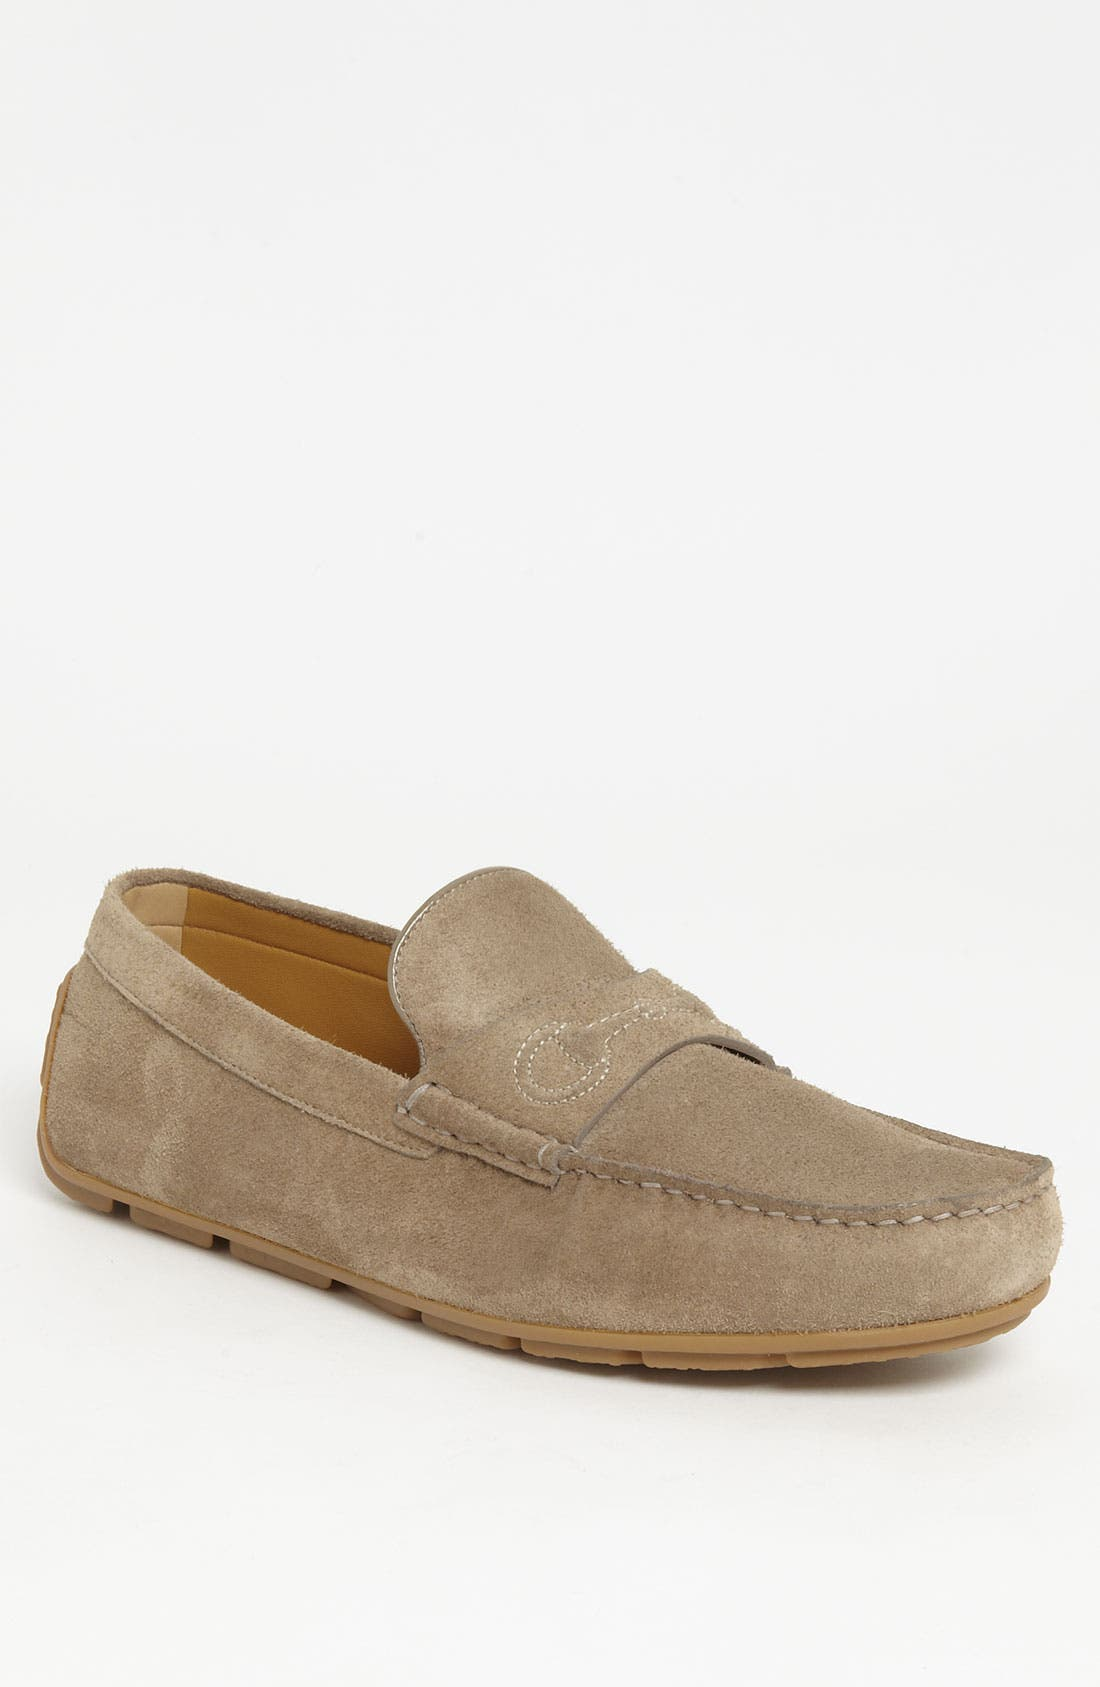 Alternate Image 1 Selected - Gucci 'Chabas' Driving Shoe